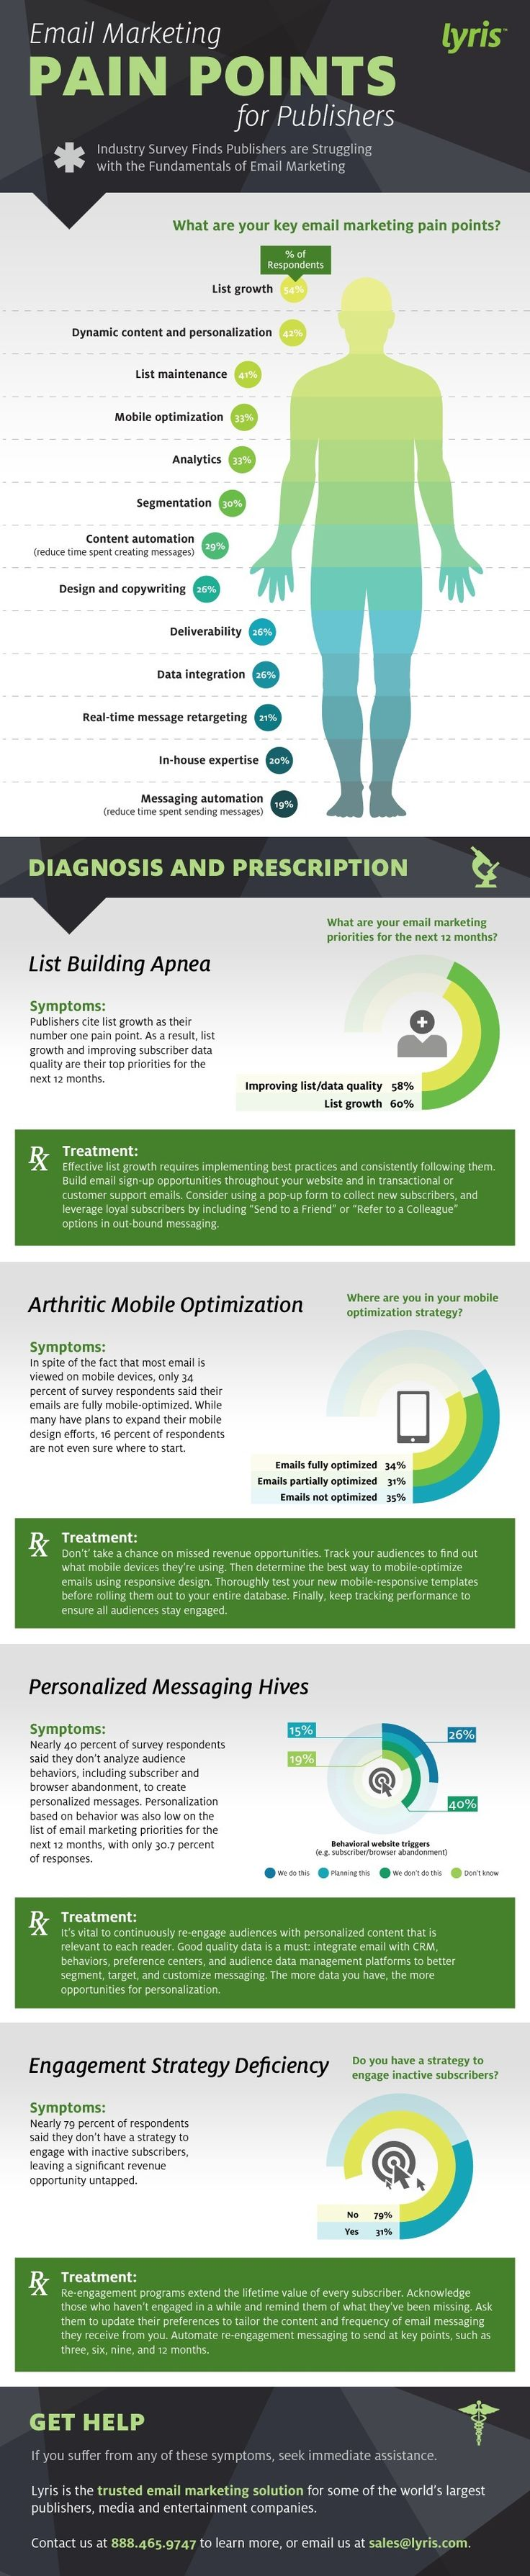 Top Email Marketing Pain Points [Infographic] Calgary Marketing agency http://arcreactions.com/